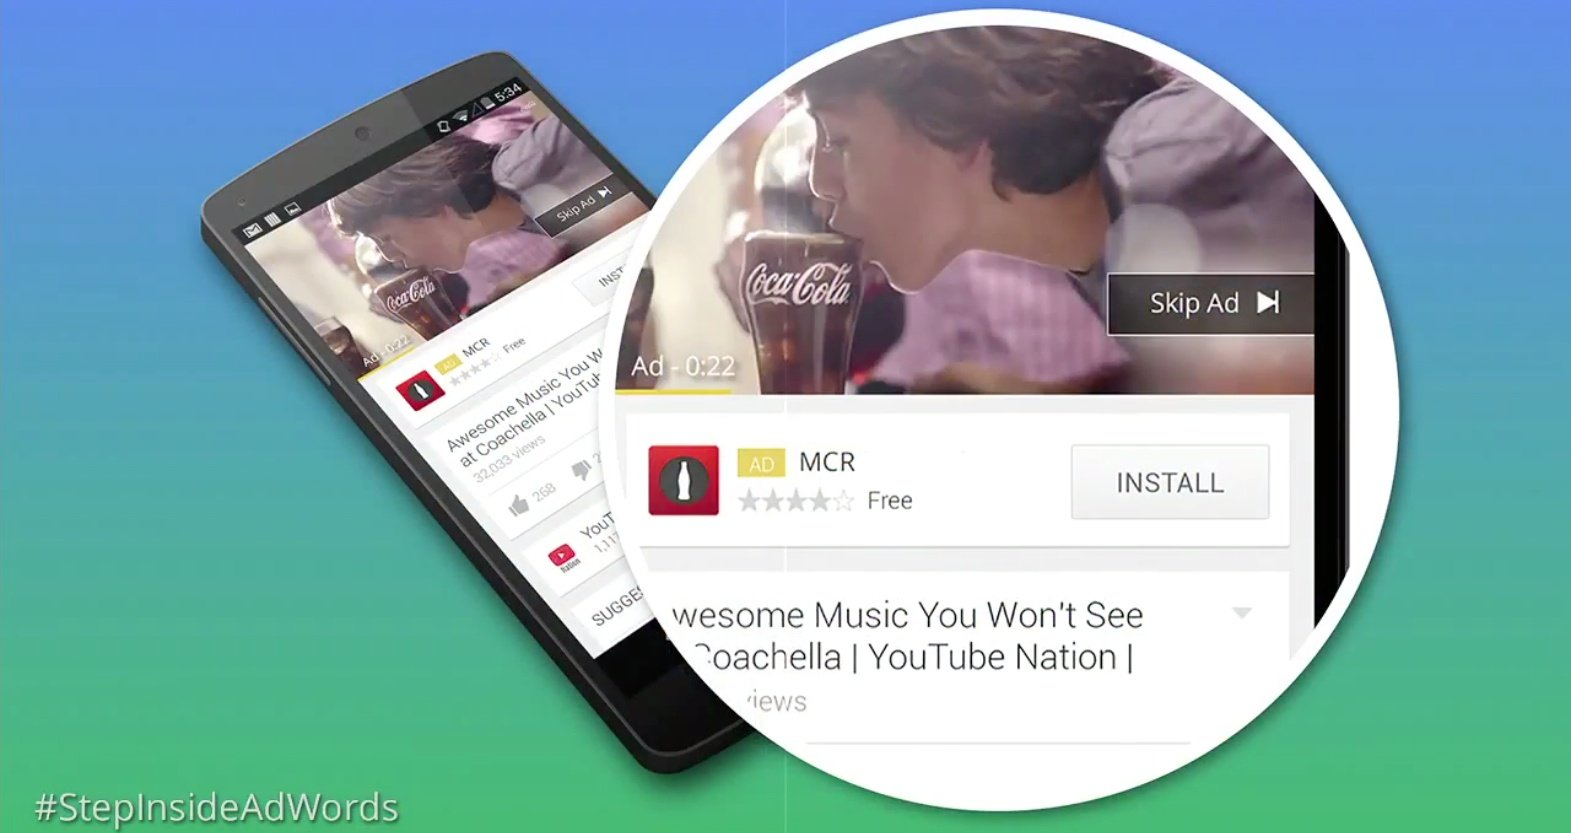 adwords youtube mobile app install ads